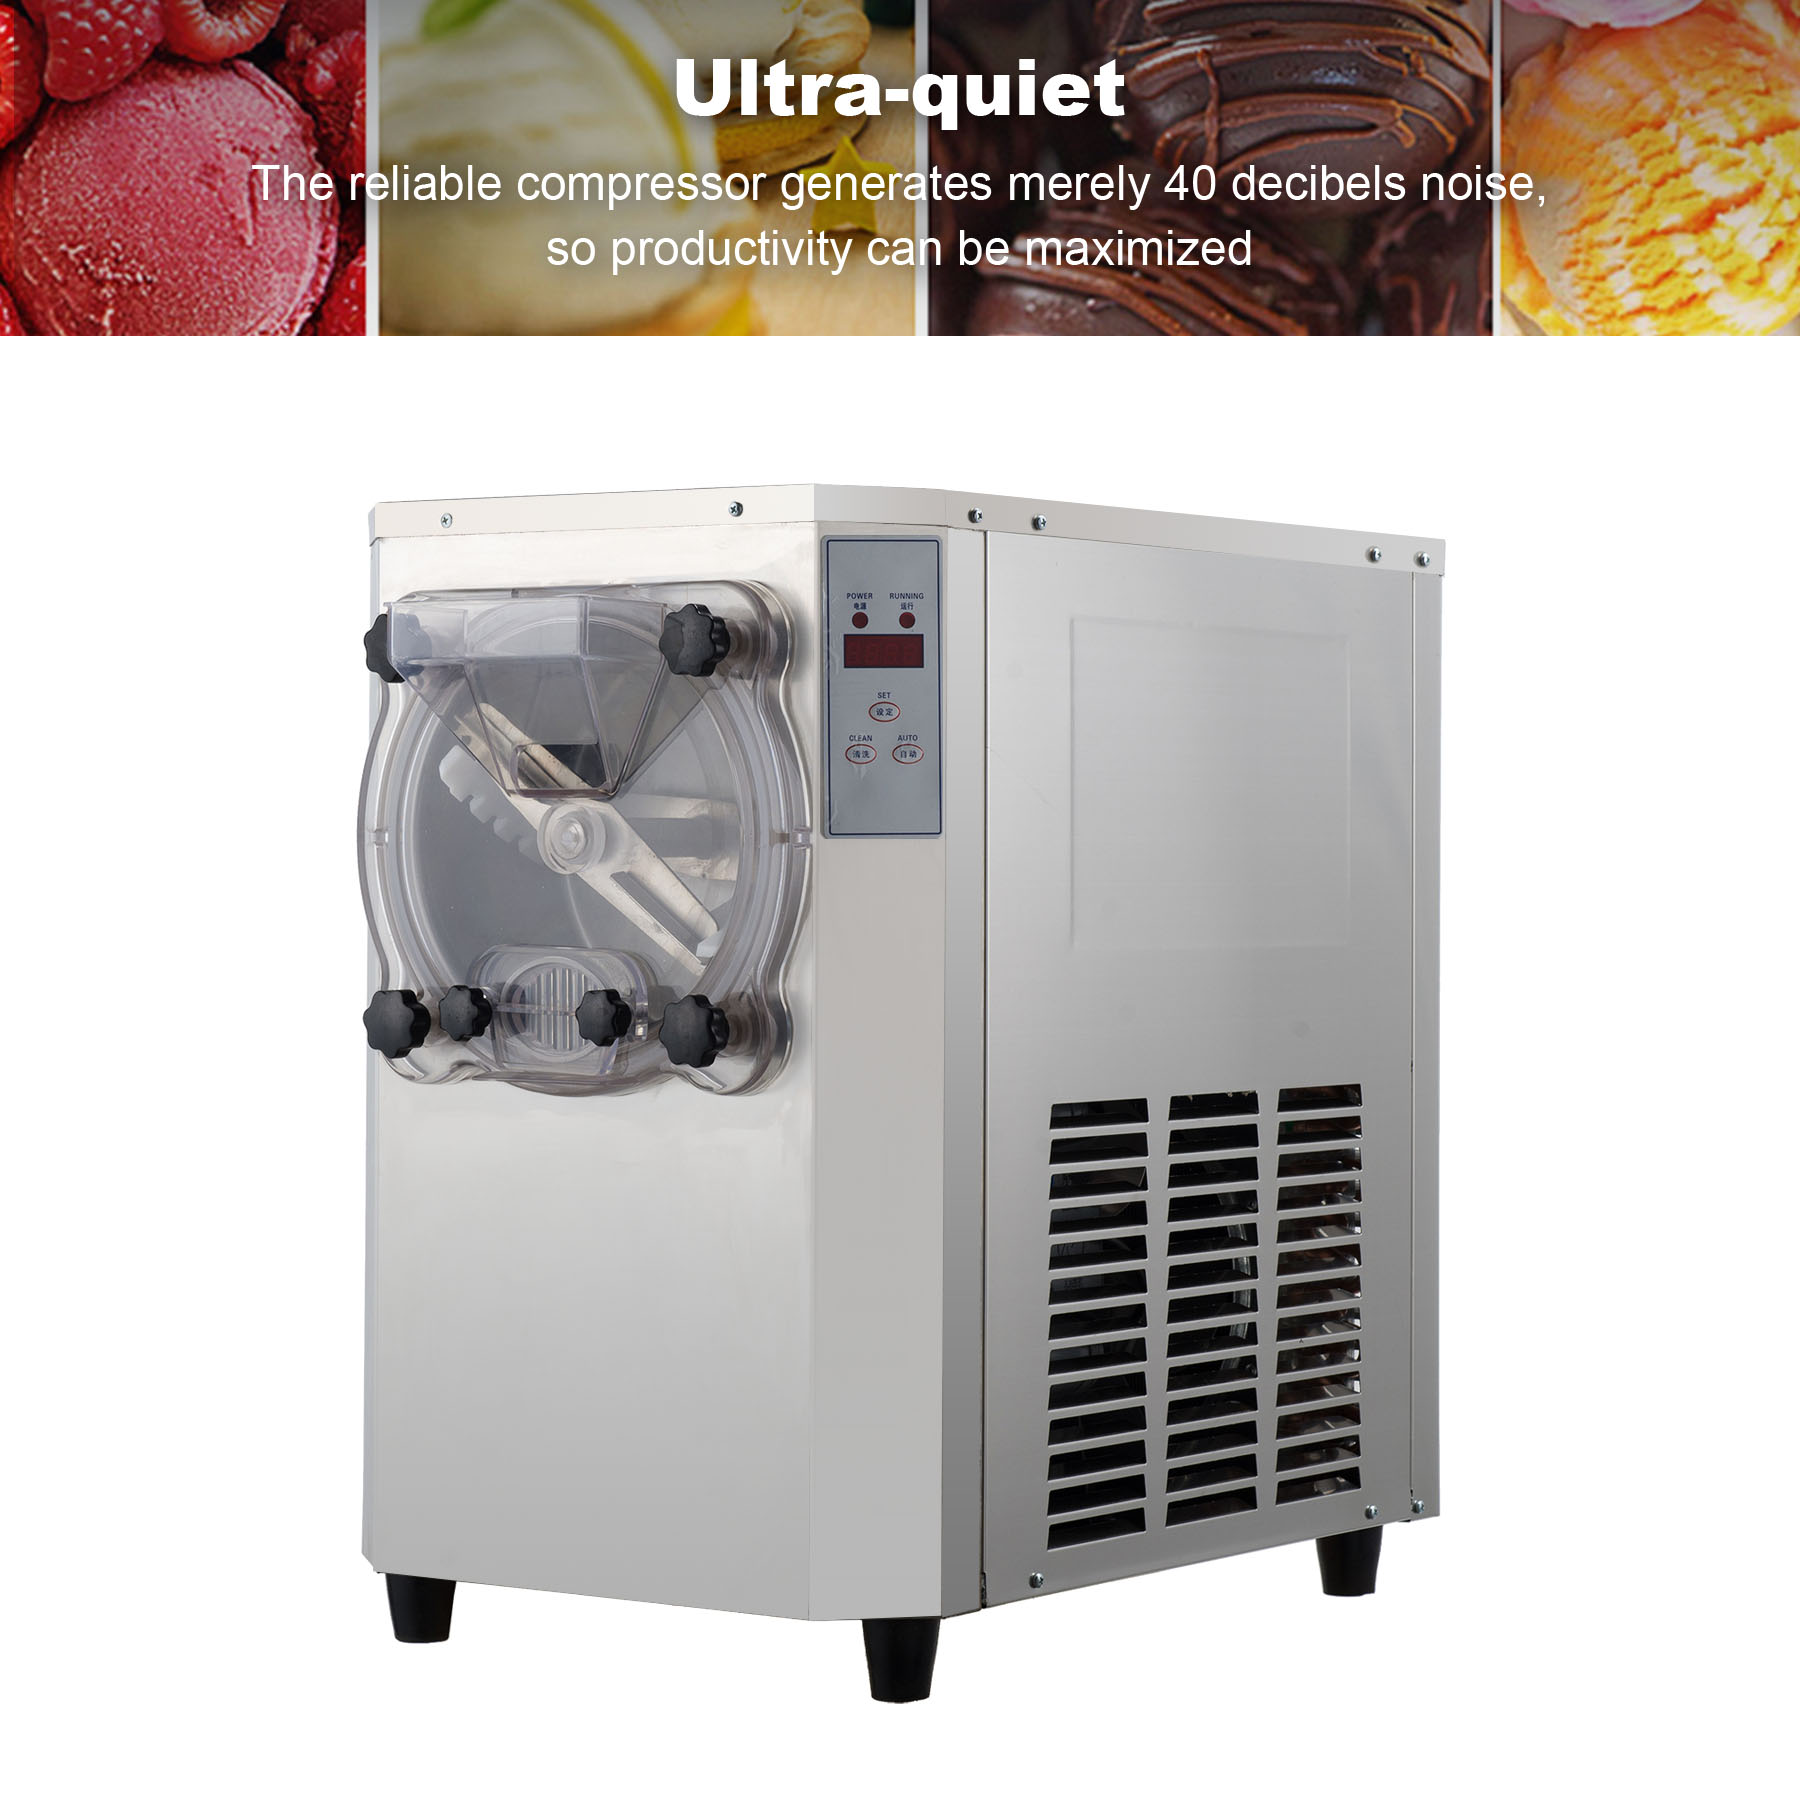 Commercial Hard Ice Cream Machine 15-22L/H 304 Stainless Steel Ice Cream Maker 1400W